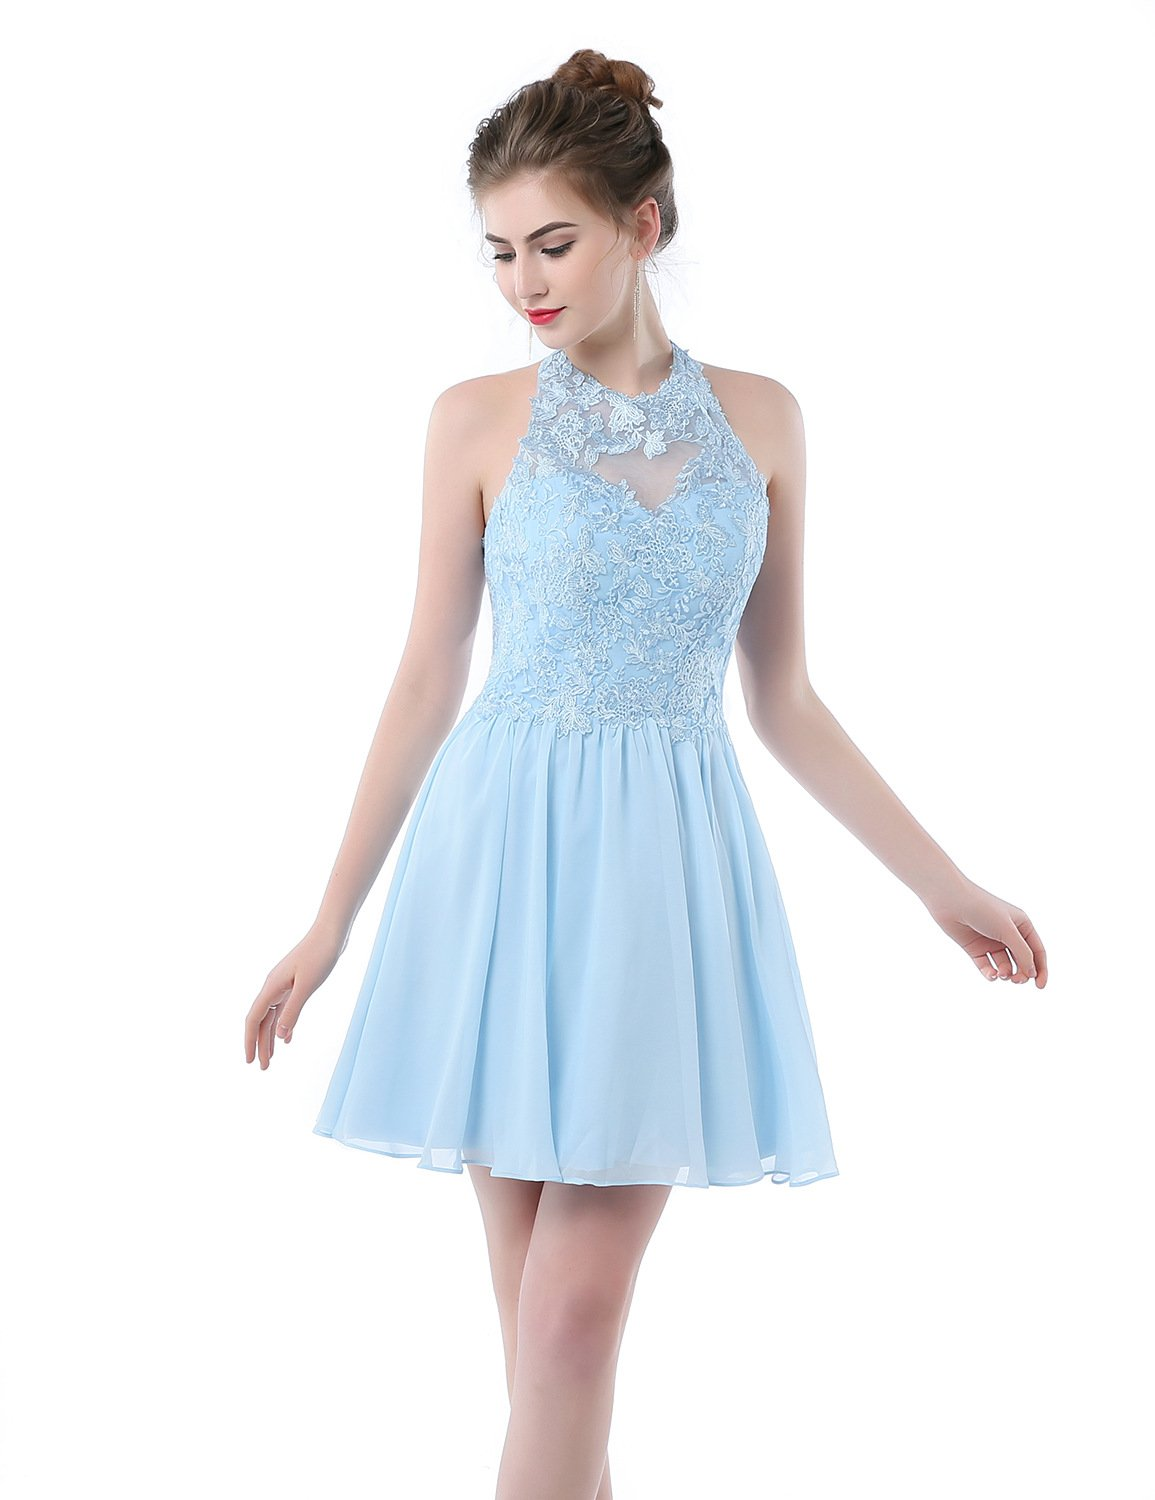 aae3027870ea Women's Applique Short Chiffon Homecoming Dress A Line Prom Dress Sky Blue  Size 10